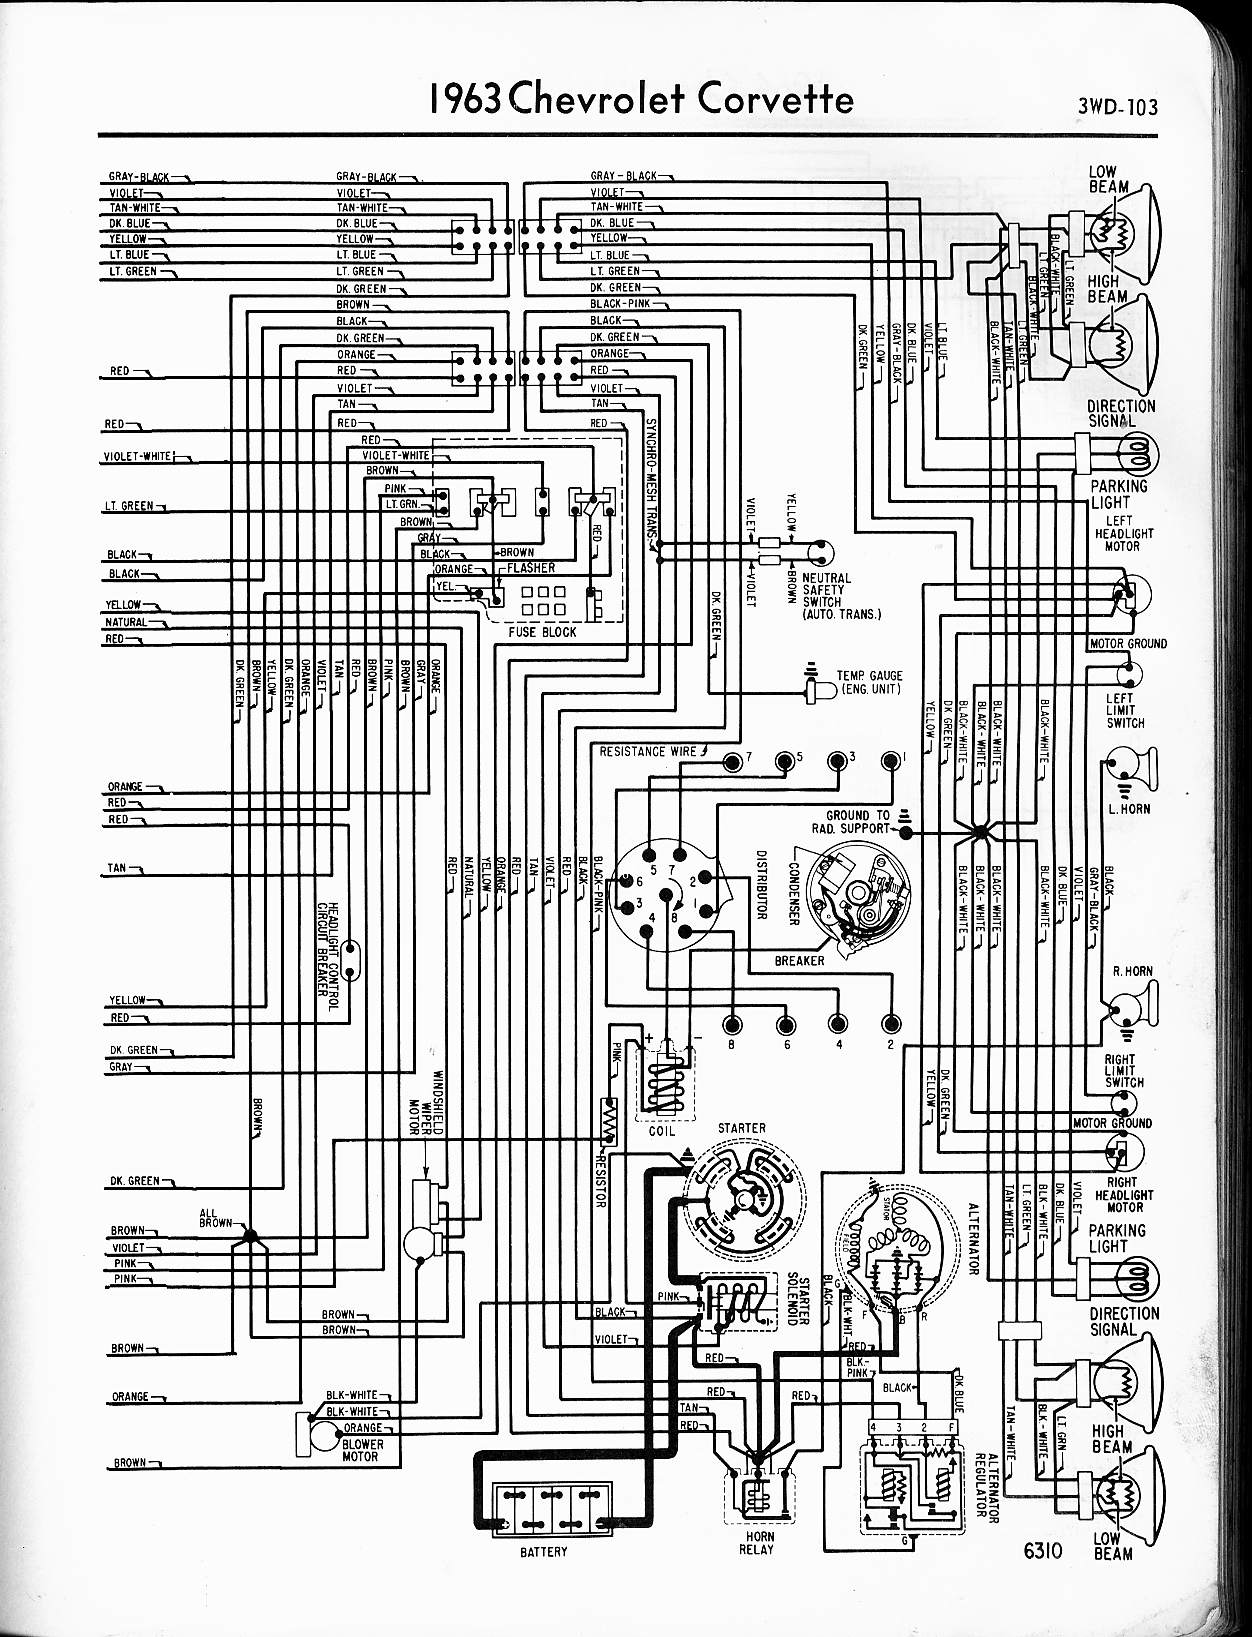 MWireChev63_3WD 103 1976 corvette wiring diagram 1976 corvette fuse box diagram 65 corvette wiring diagram at soozxer.org